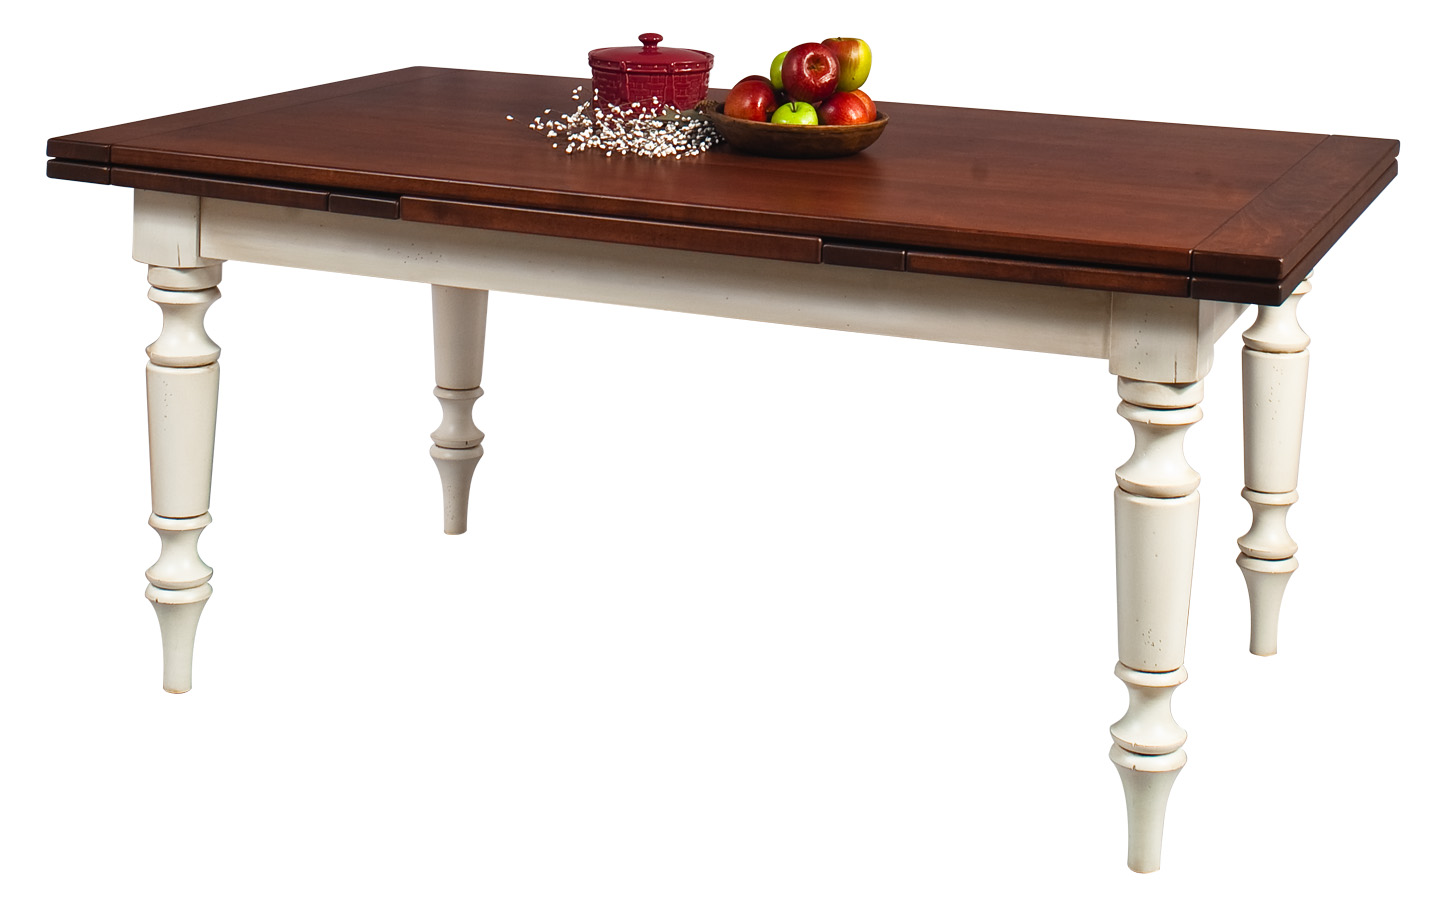 Dining Table For 20 Dimensions: Kingston Drawleaf Table